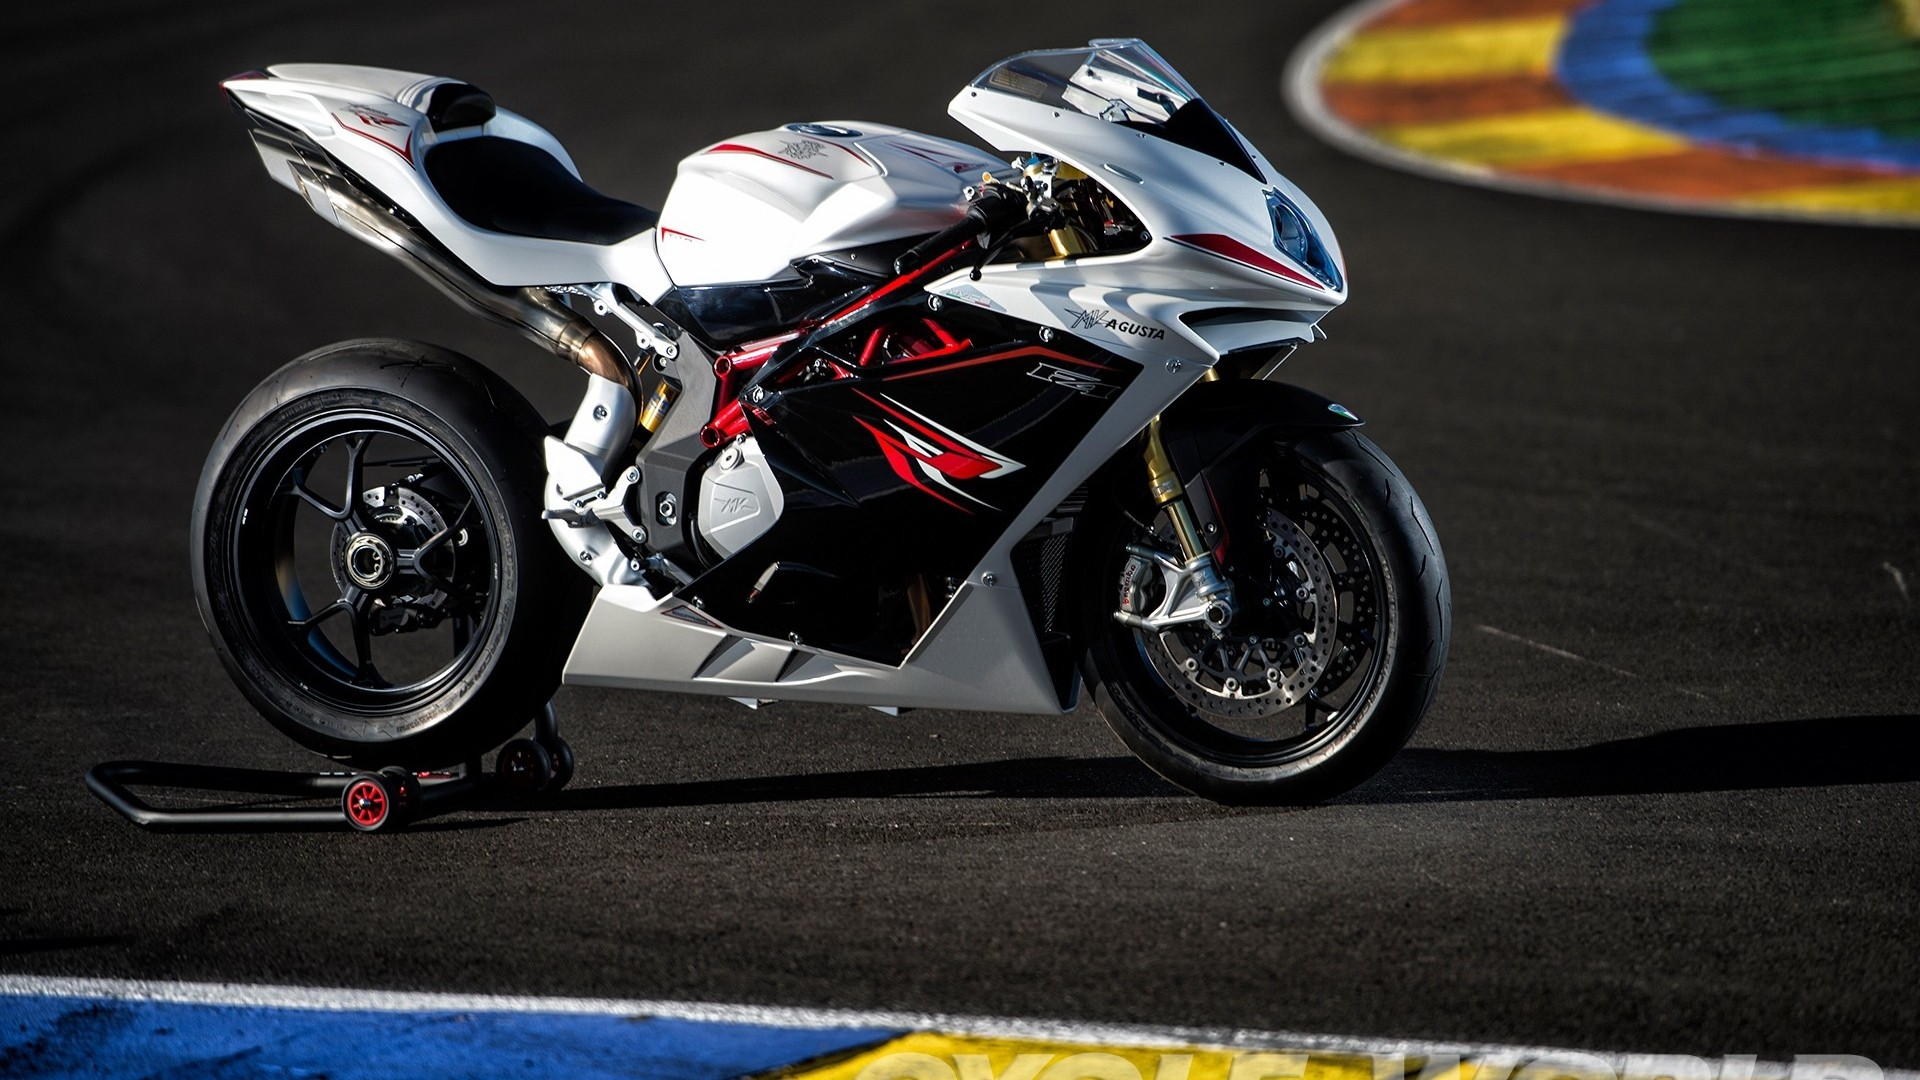 Sport Bikes Wallpapers For Android: MV-Agusta Sportbike Wallpaper